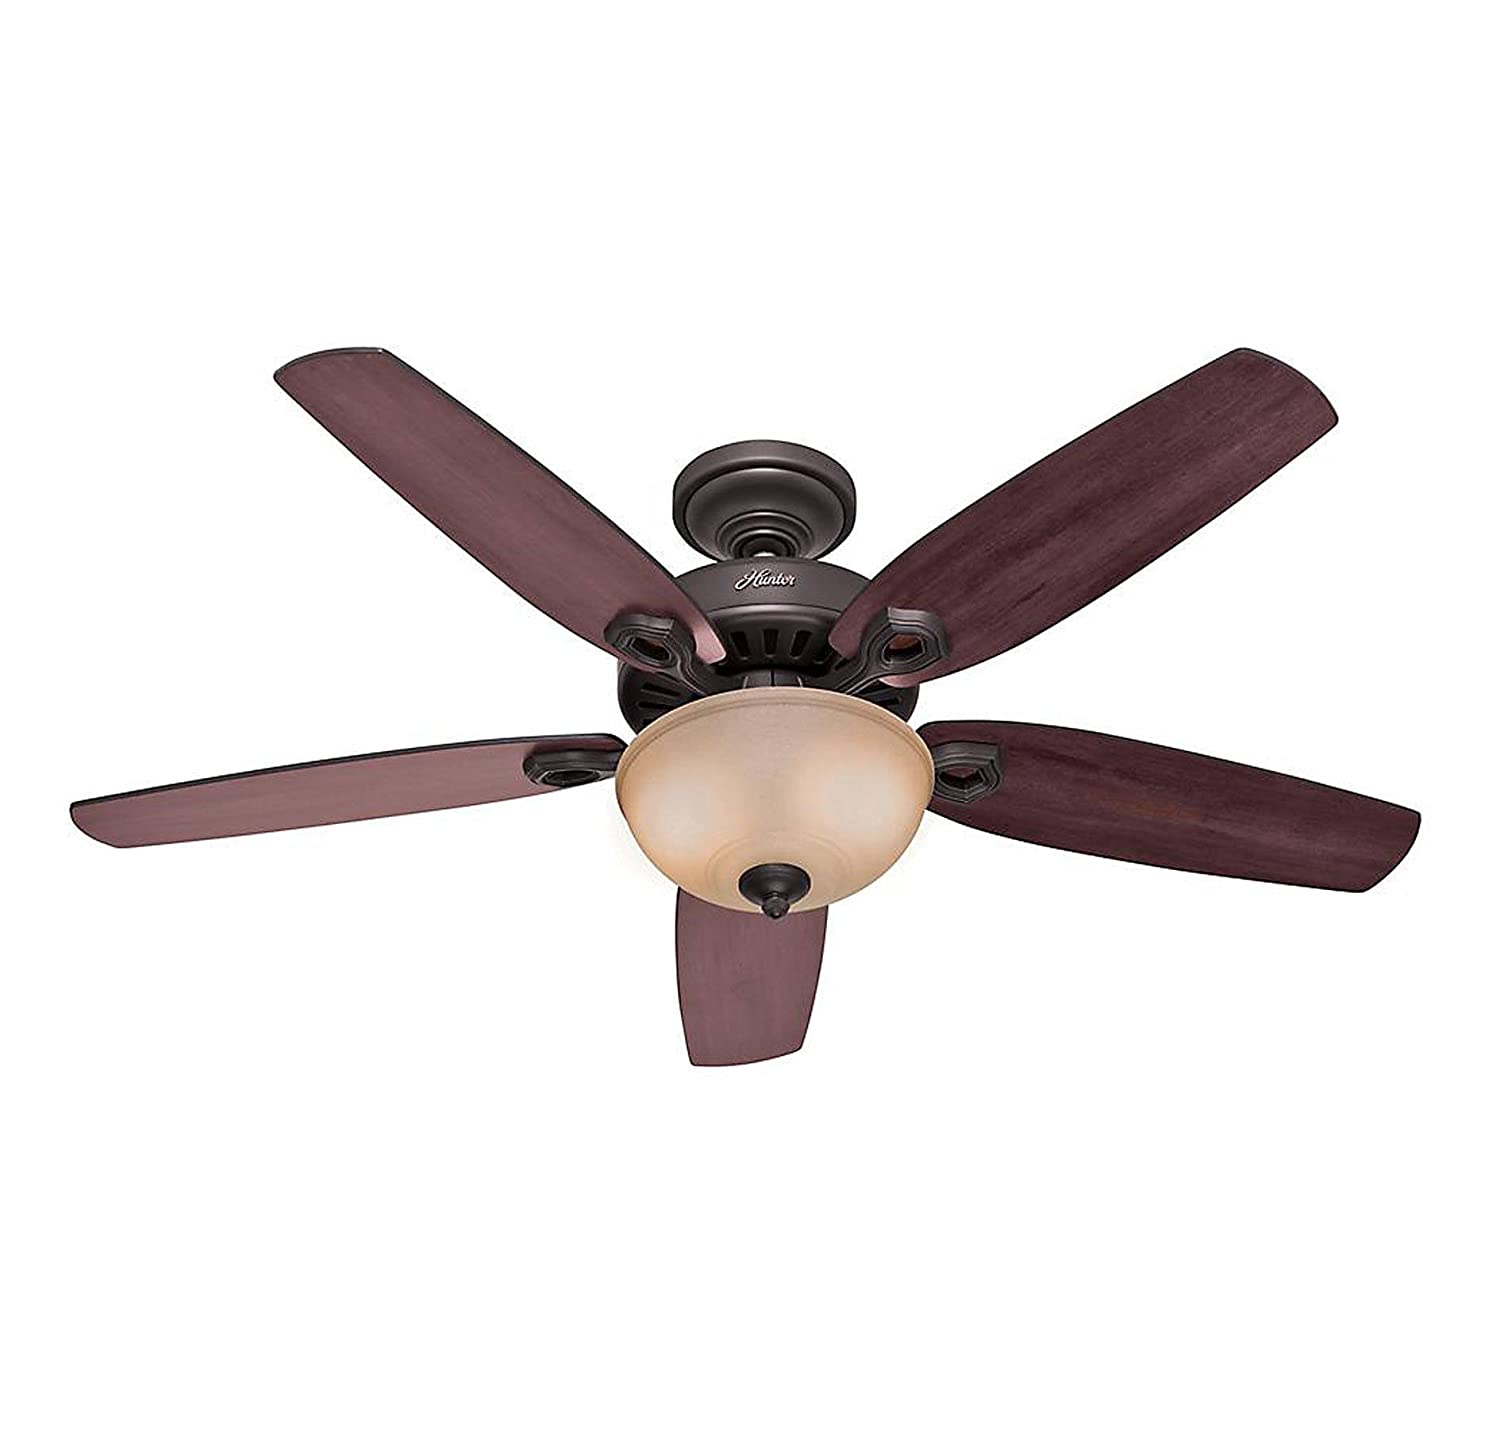 Black Friday Ceiling Fans Deals